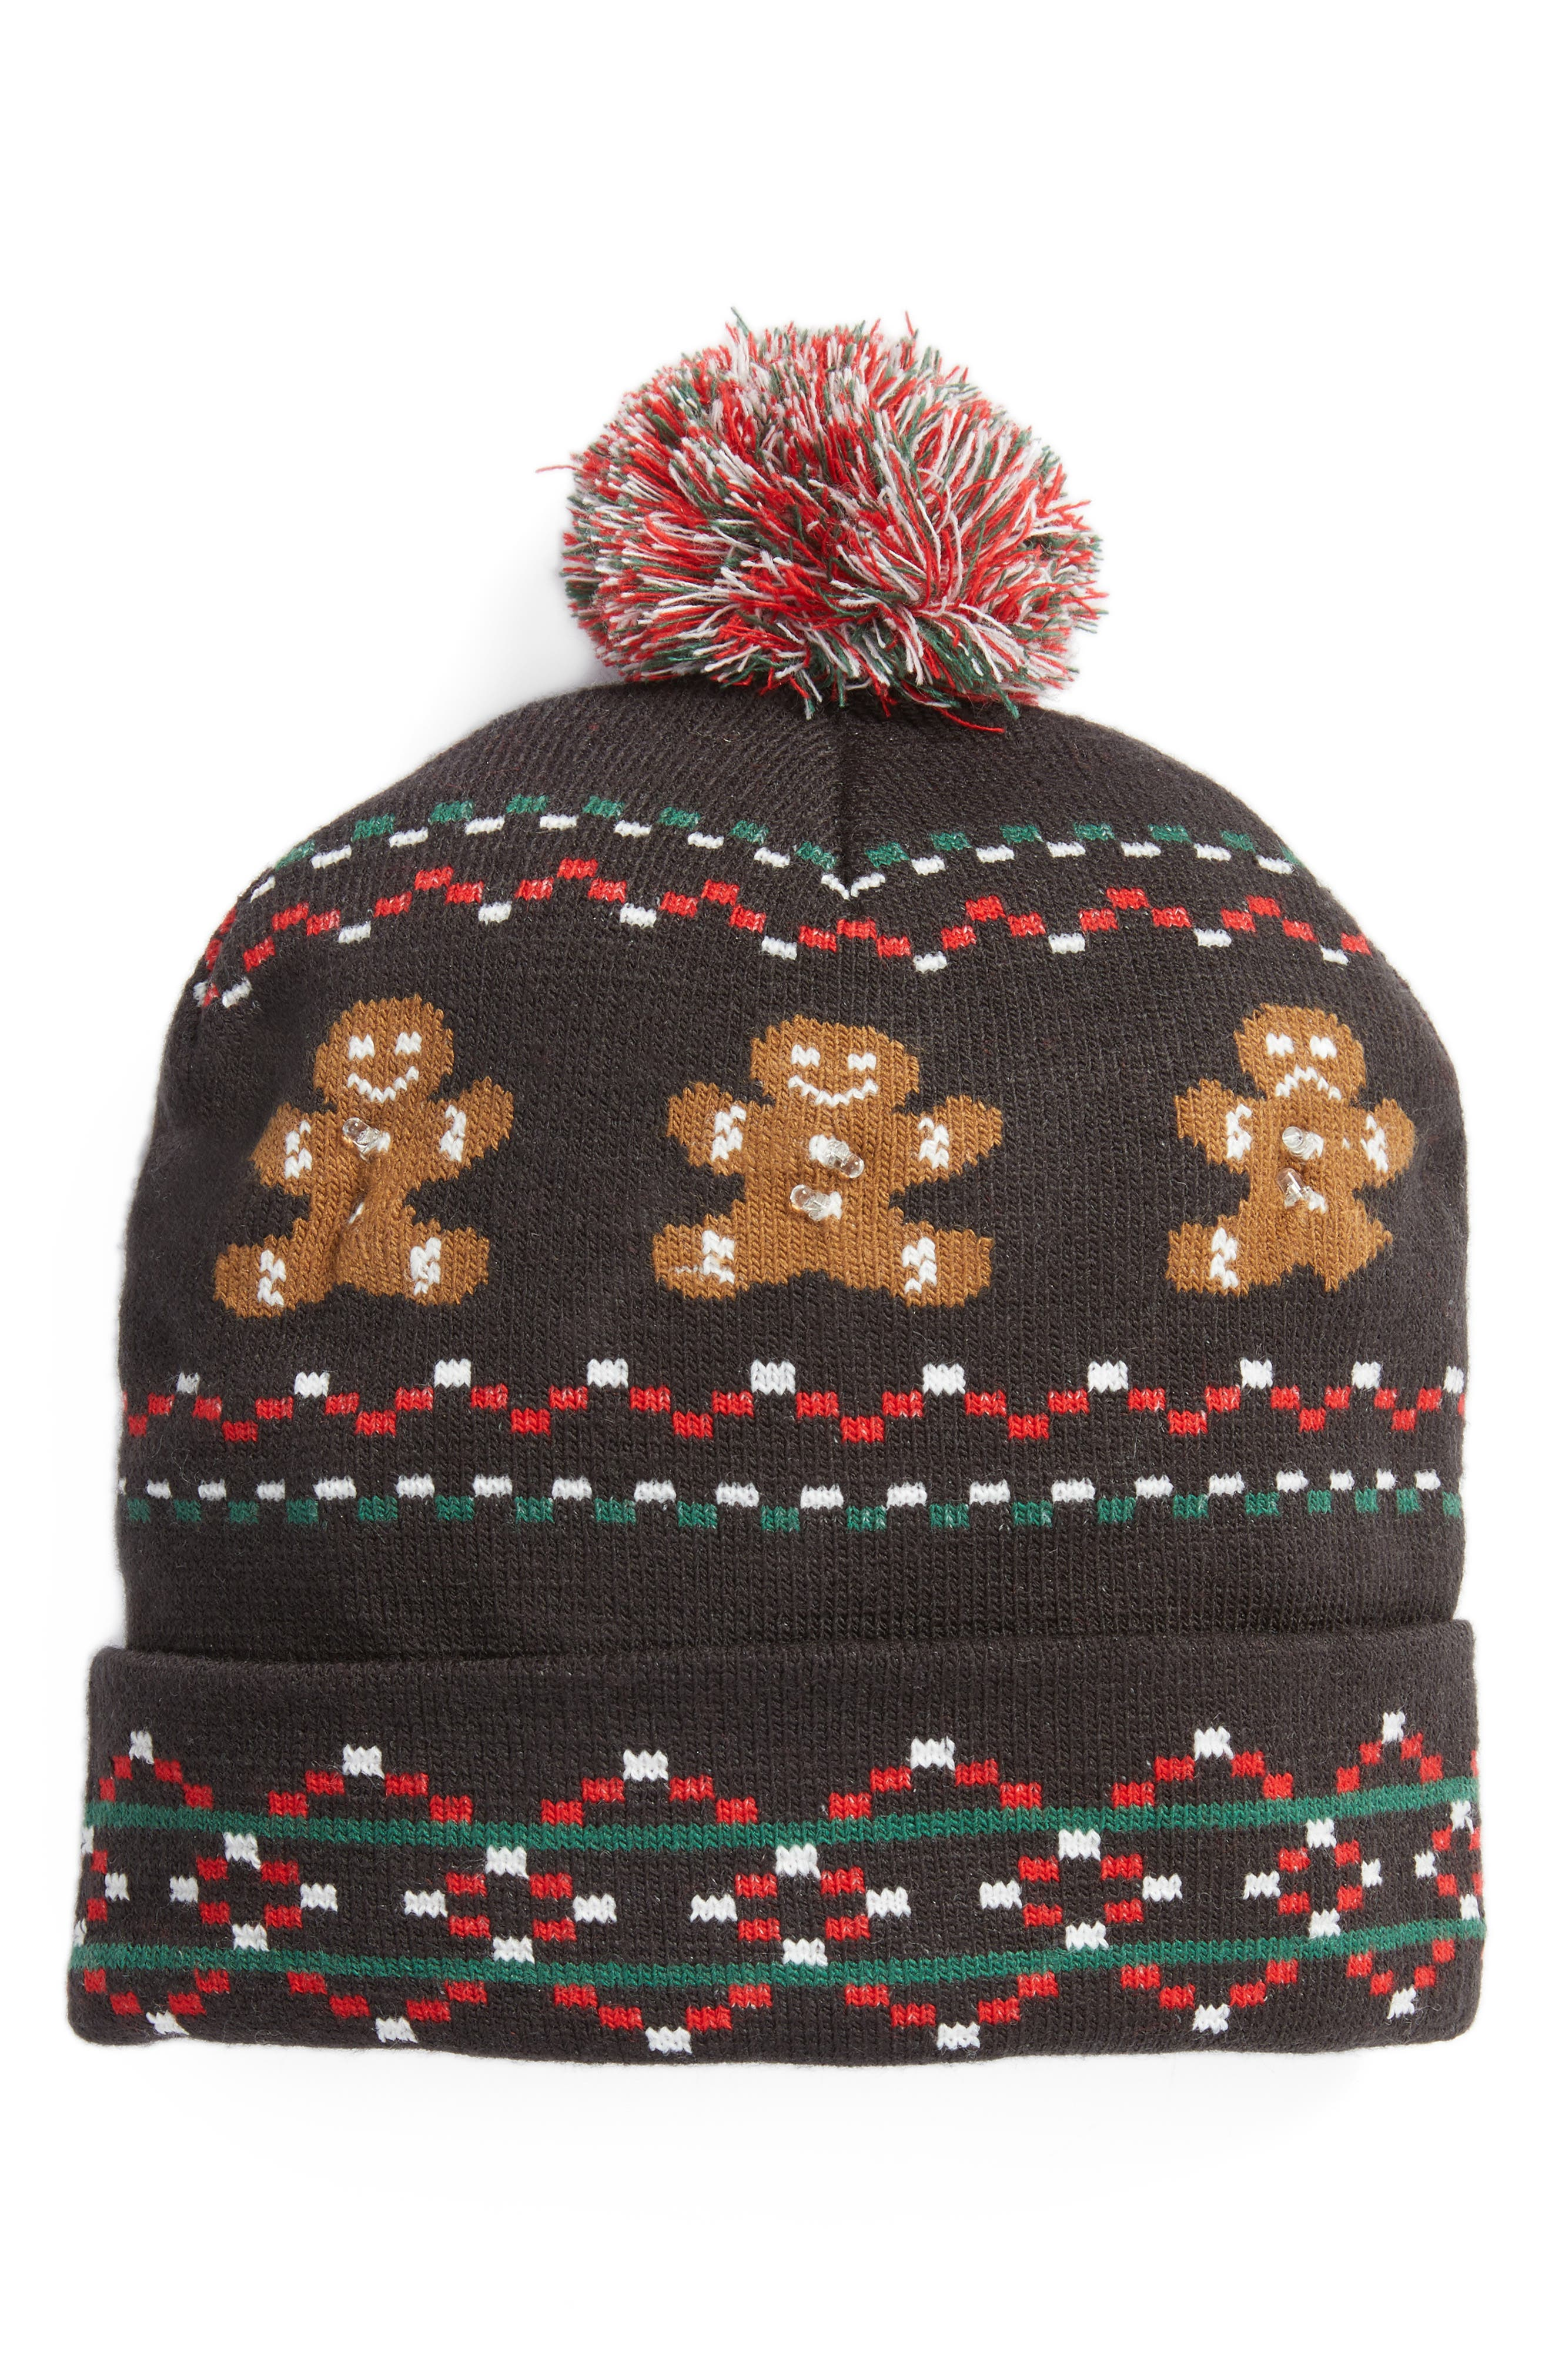 Capelli New York Gingerbread Light Up Beanie